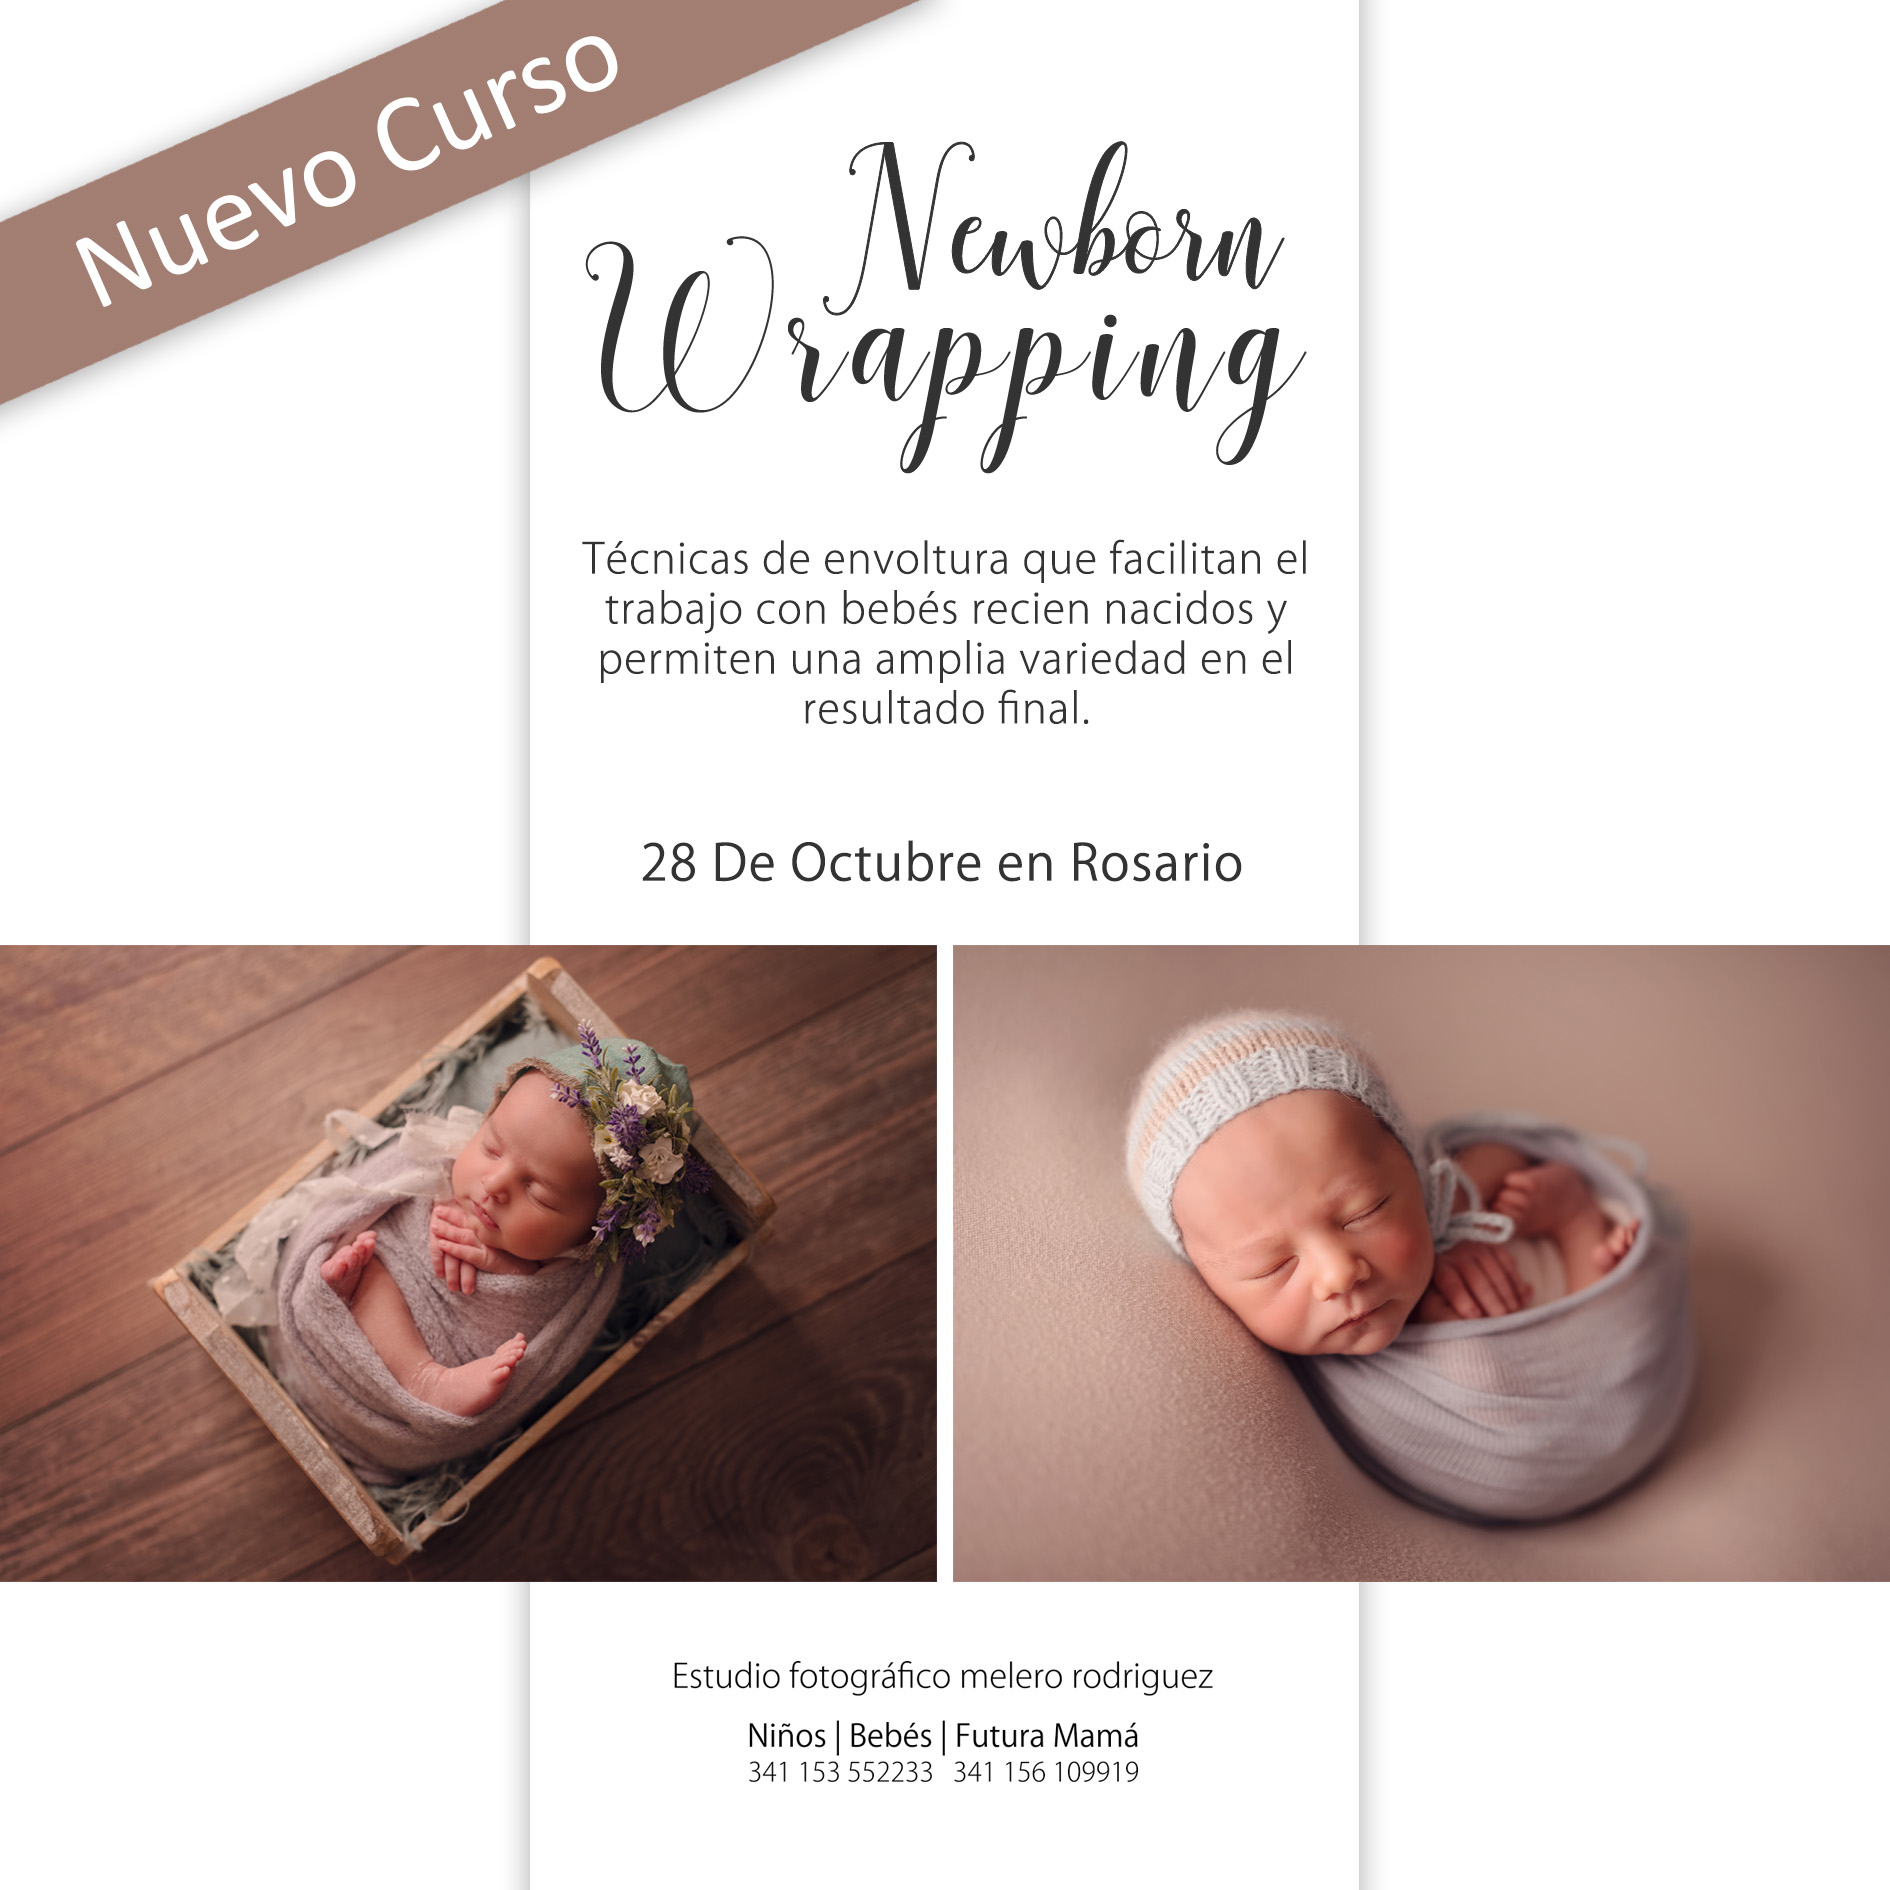 Wrapping Octubre